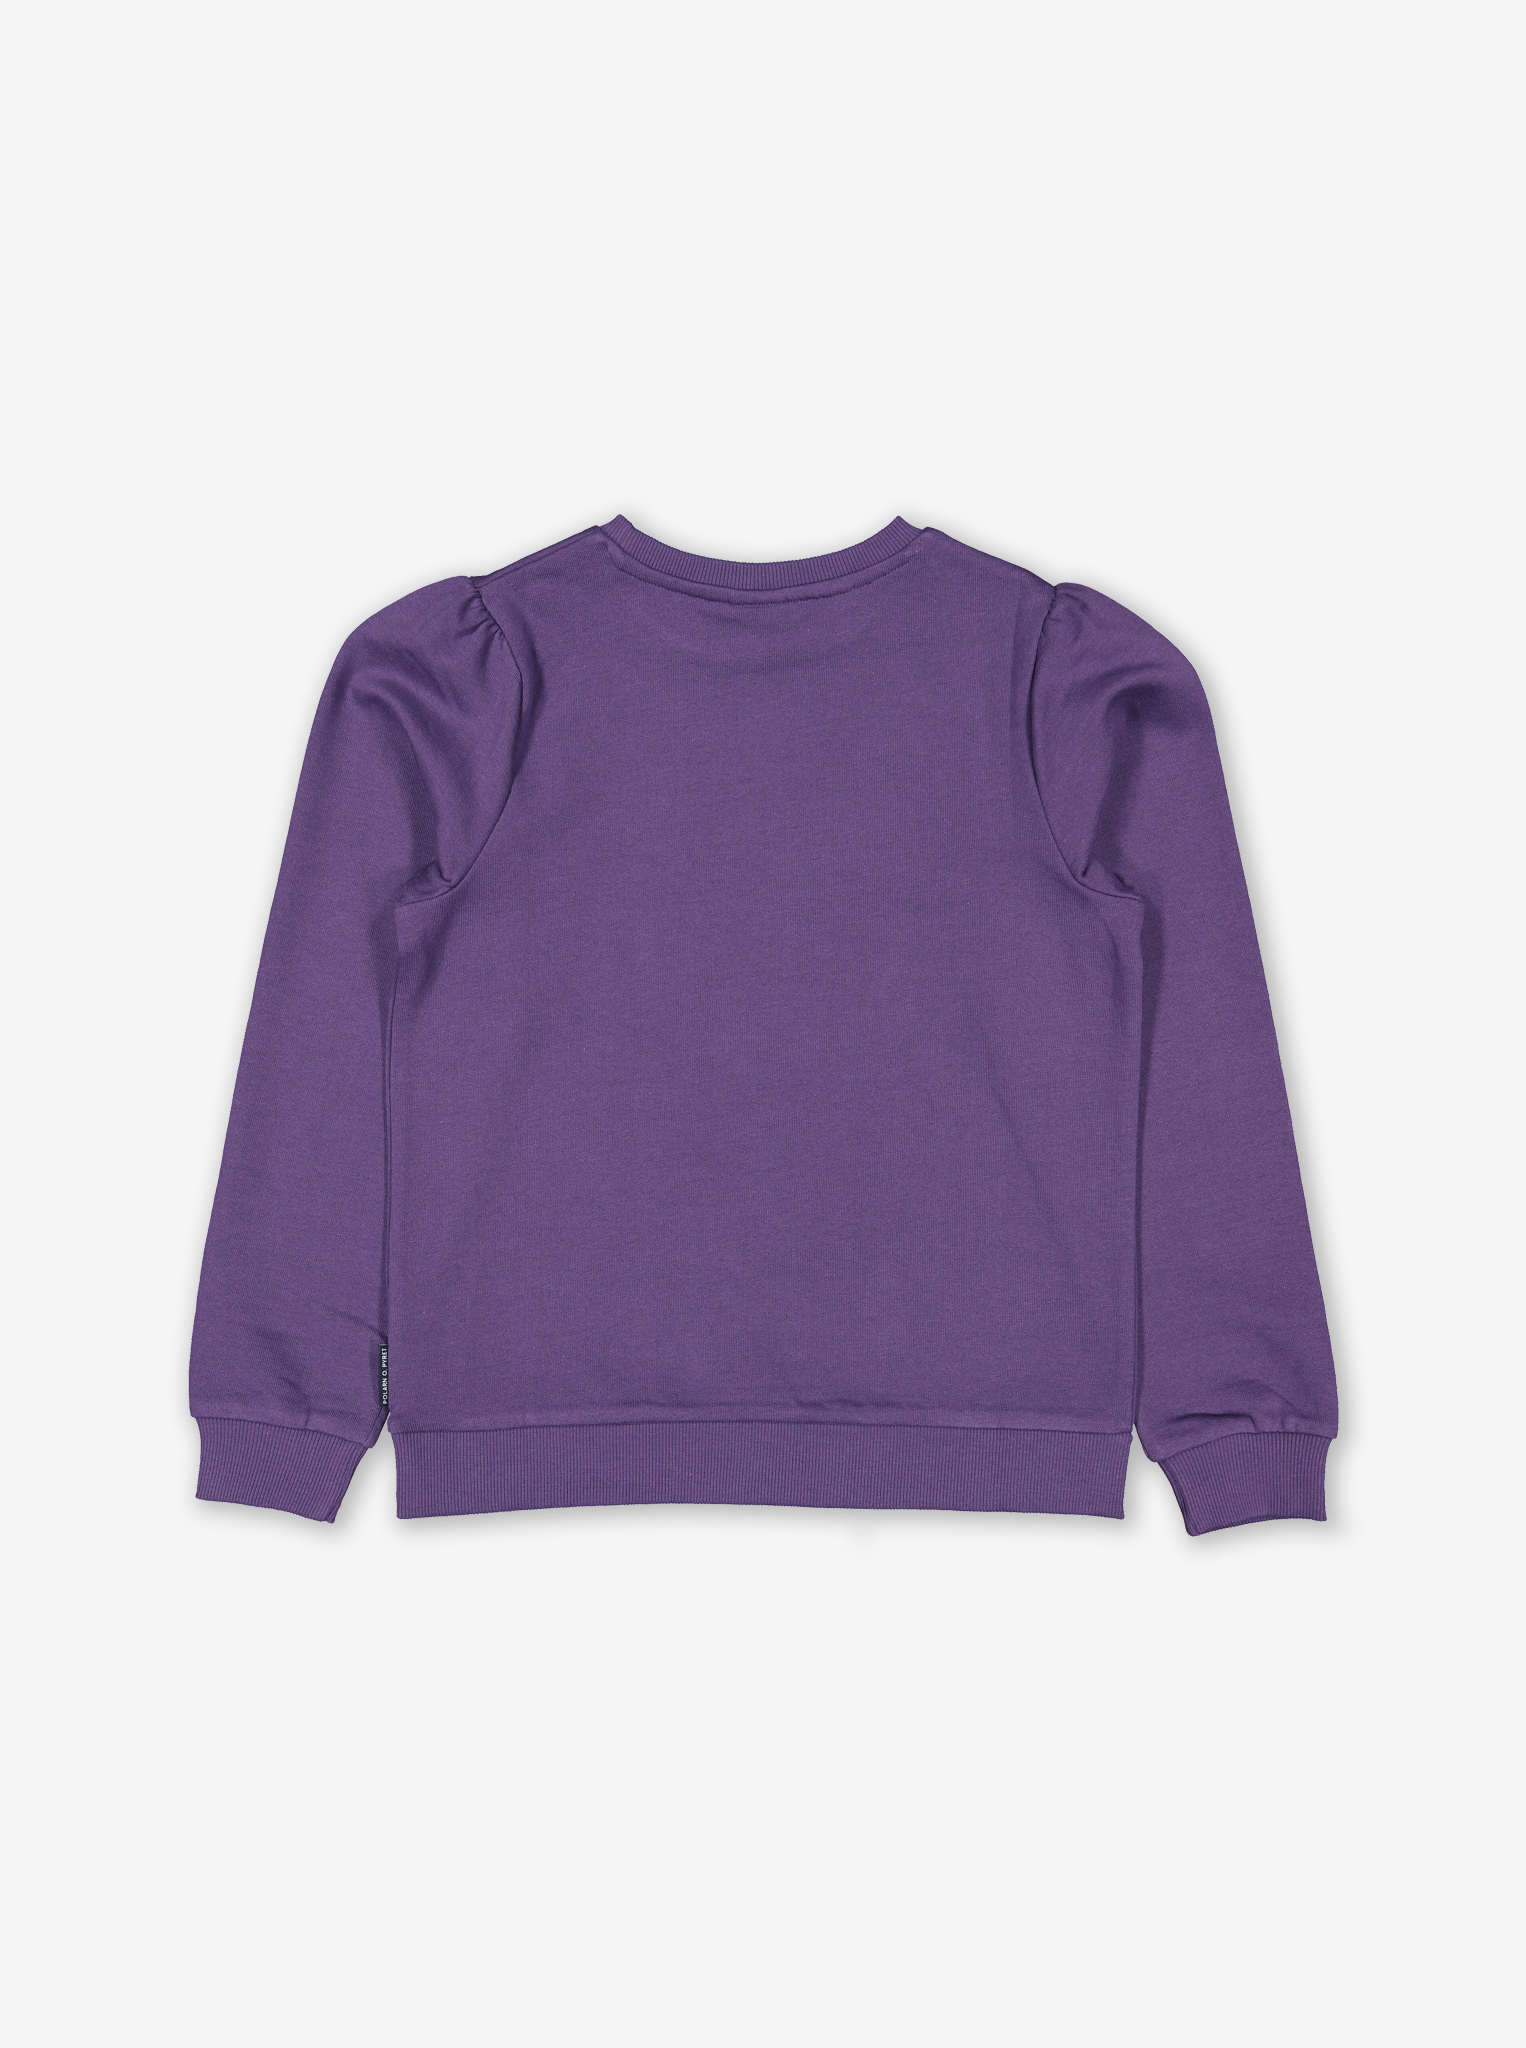 Colour Change Rabbit Kids Sweatshirt Purple